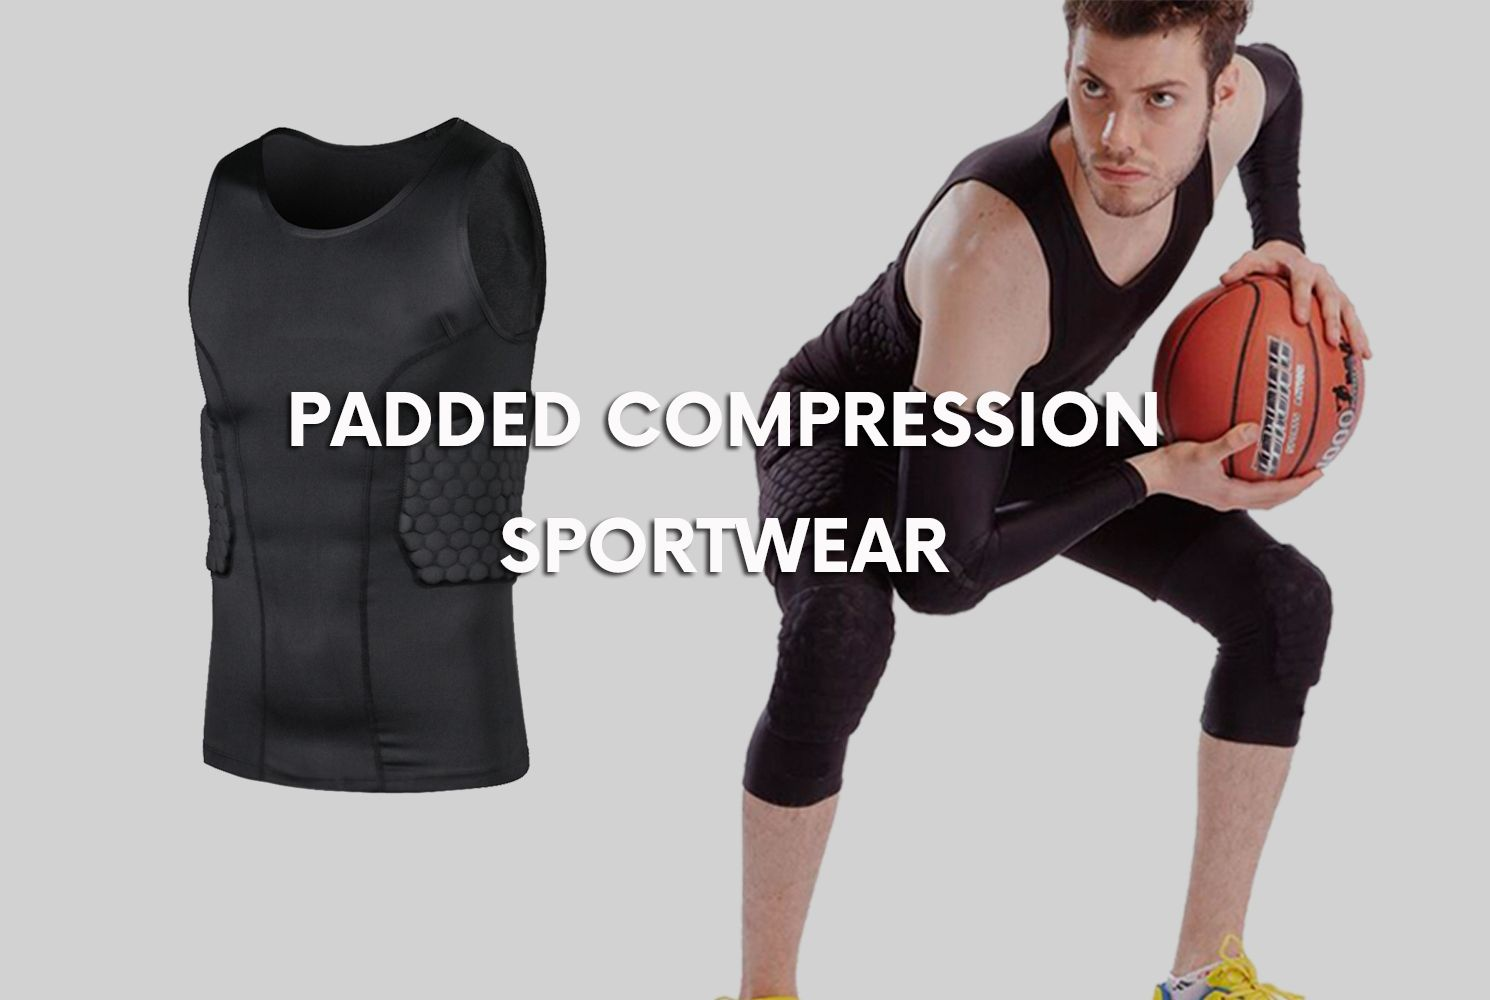 Men Integrated Football Shirt Offers Added Protection Without Taking Away Your Mobility 6 Pad Pr Padded Compression Shirt Padded Compression Sleeveless Tshirt